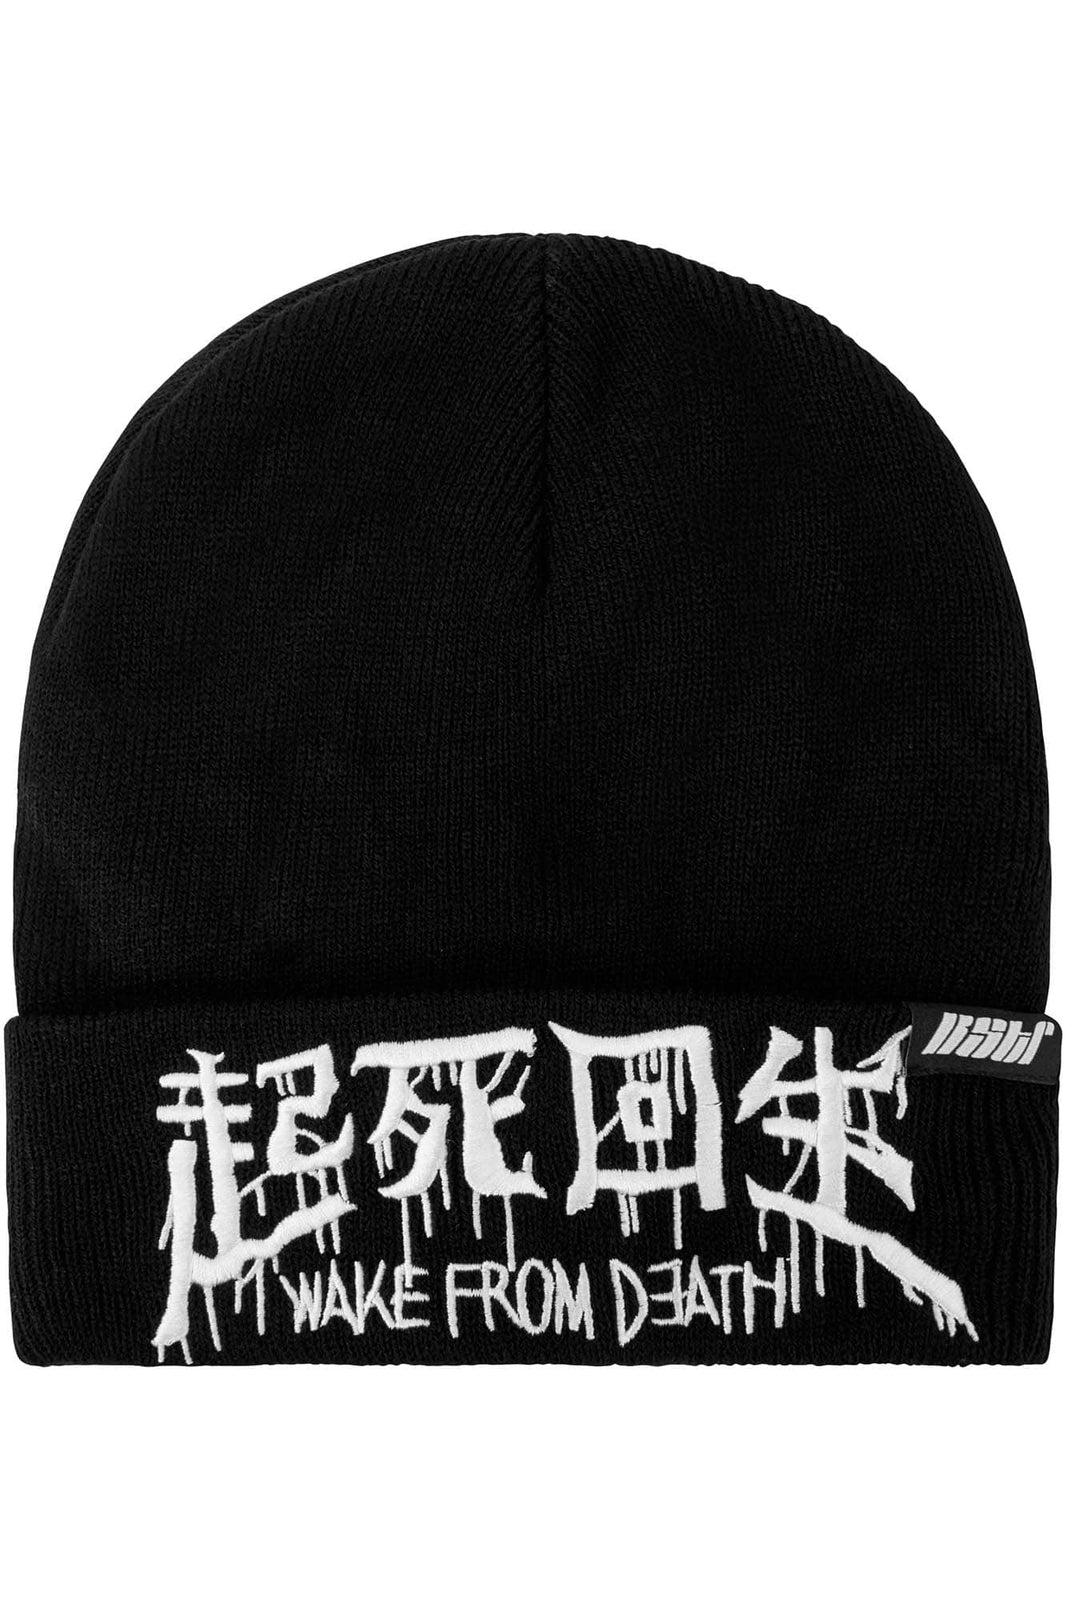 Wake From Death Beanie